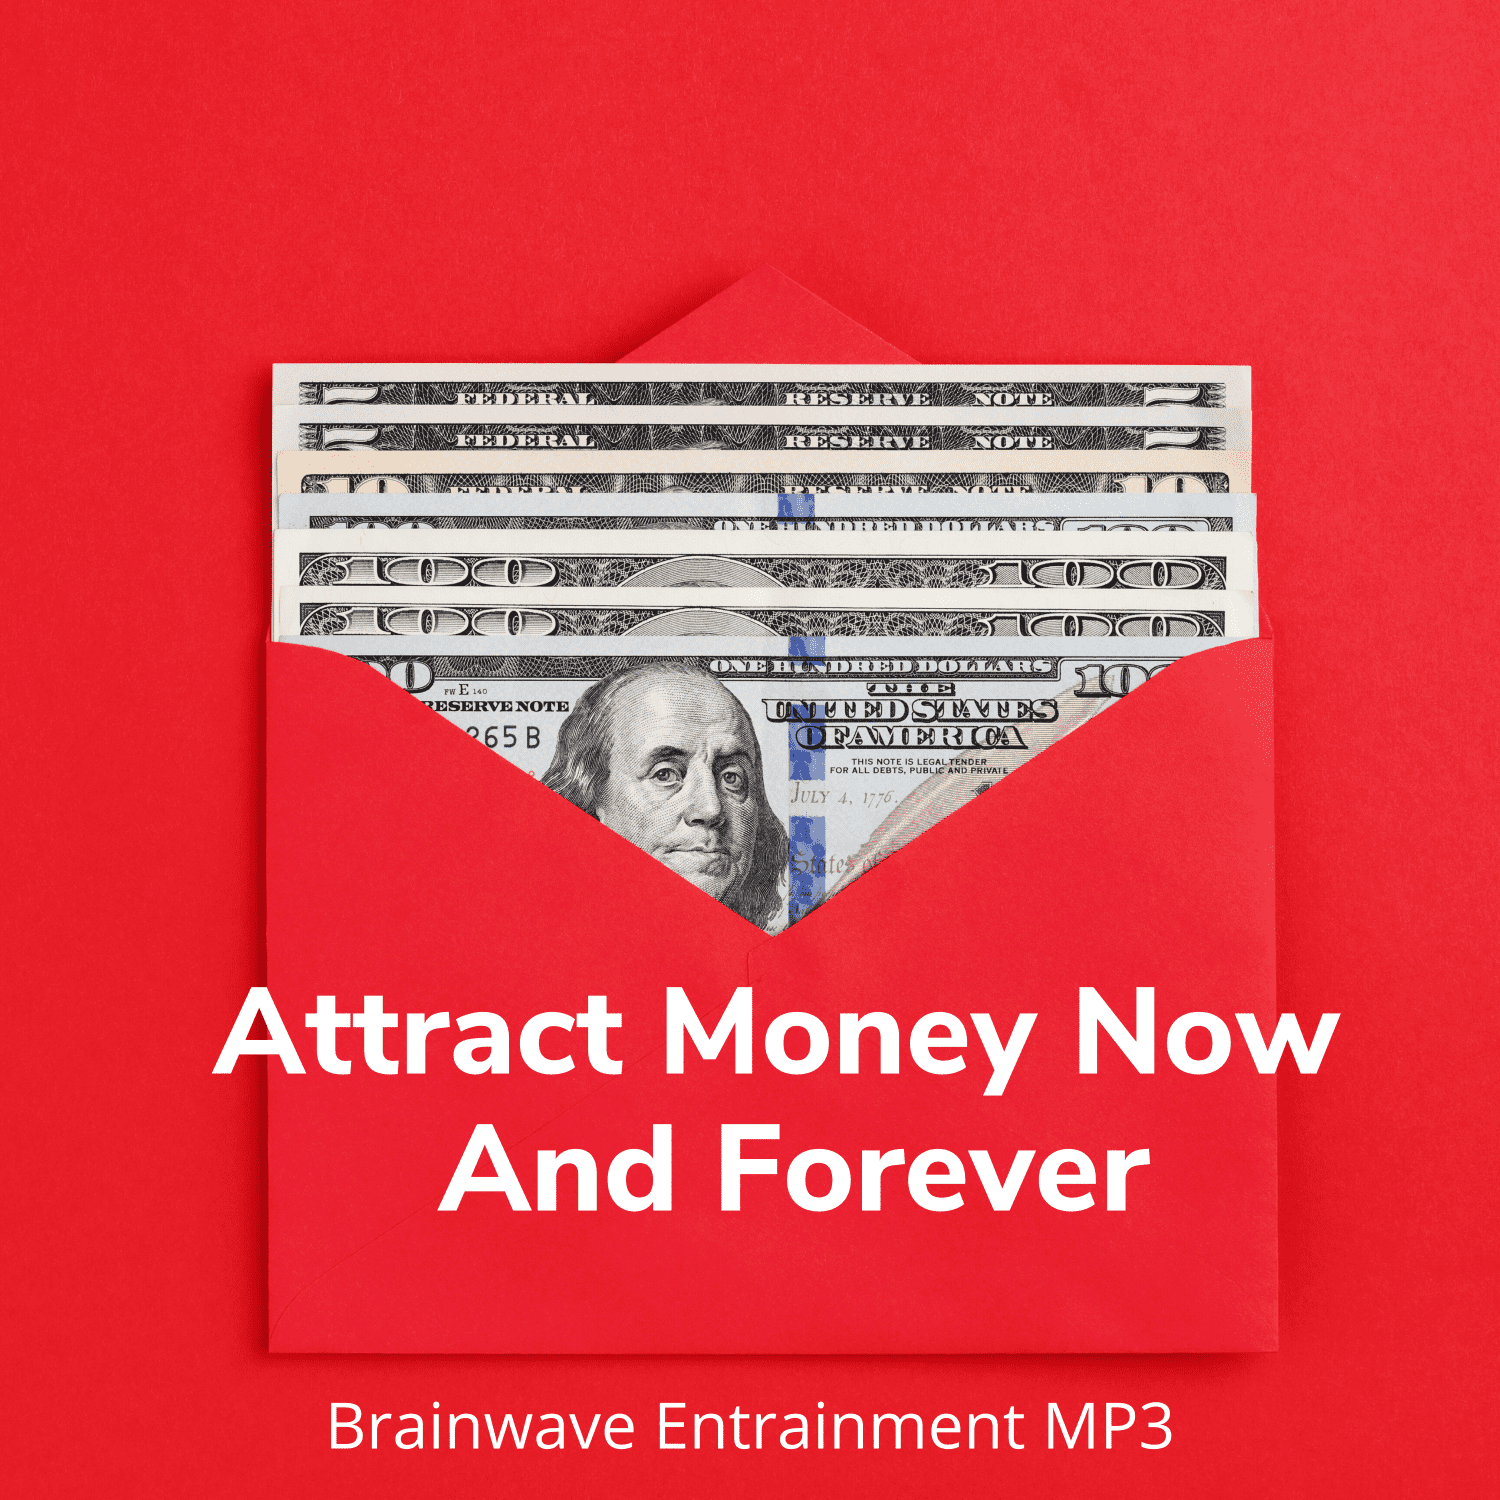 Attract Money Now And Forever - Brainwave Entrainment MP3